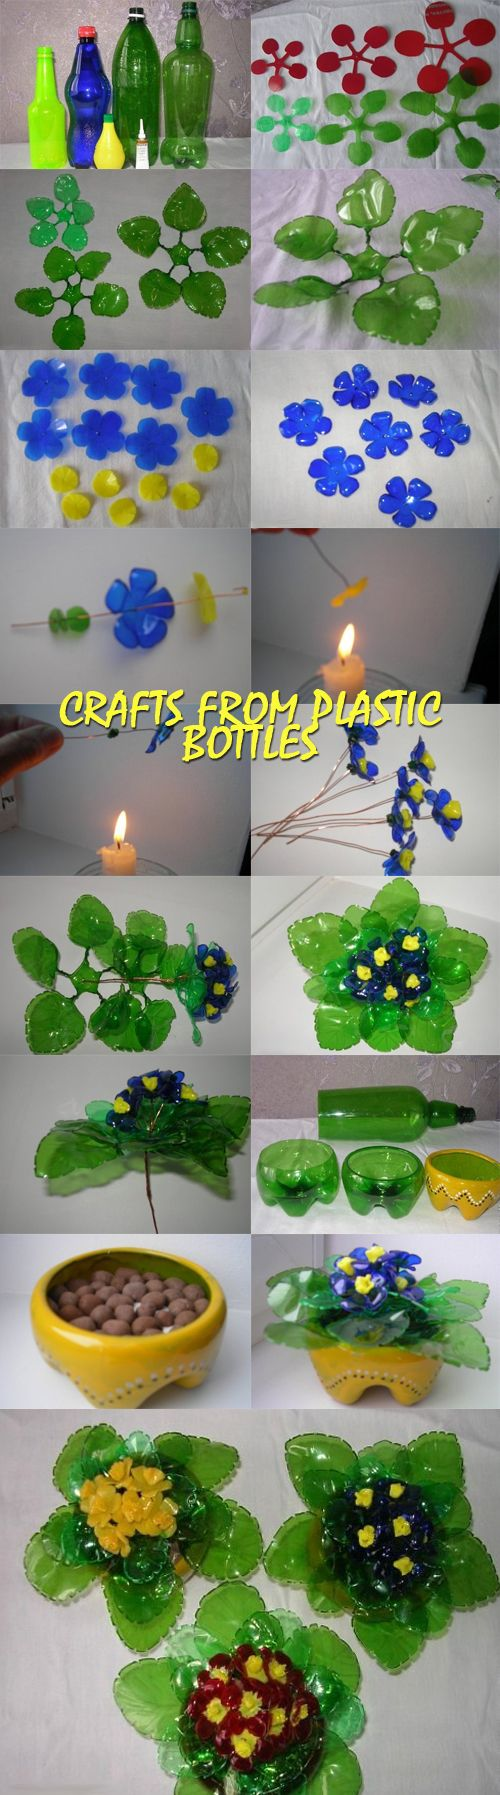 Crafts from plastic bottles GOOD HOUSE